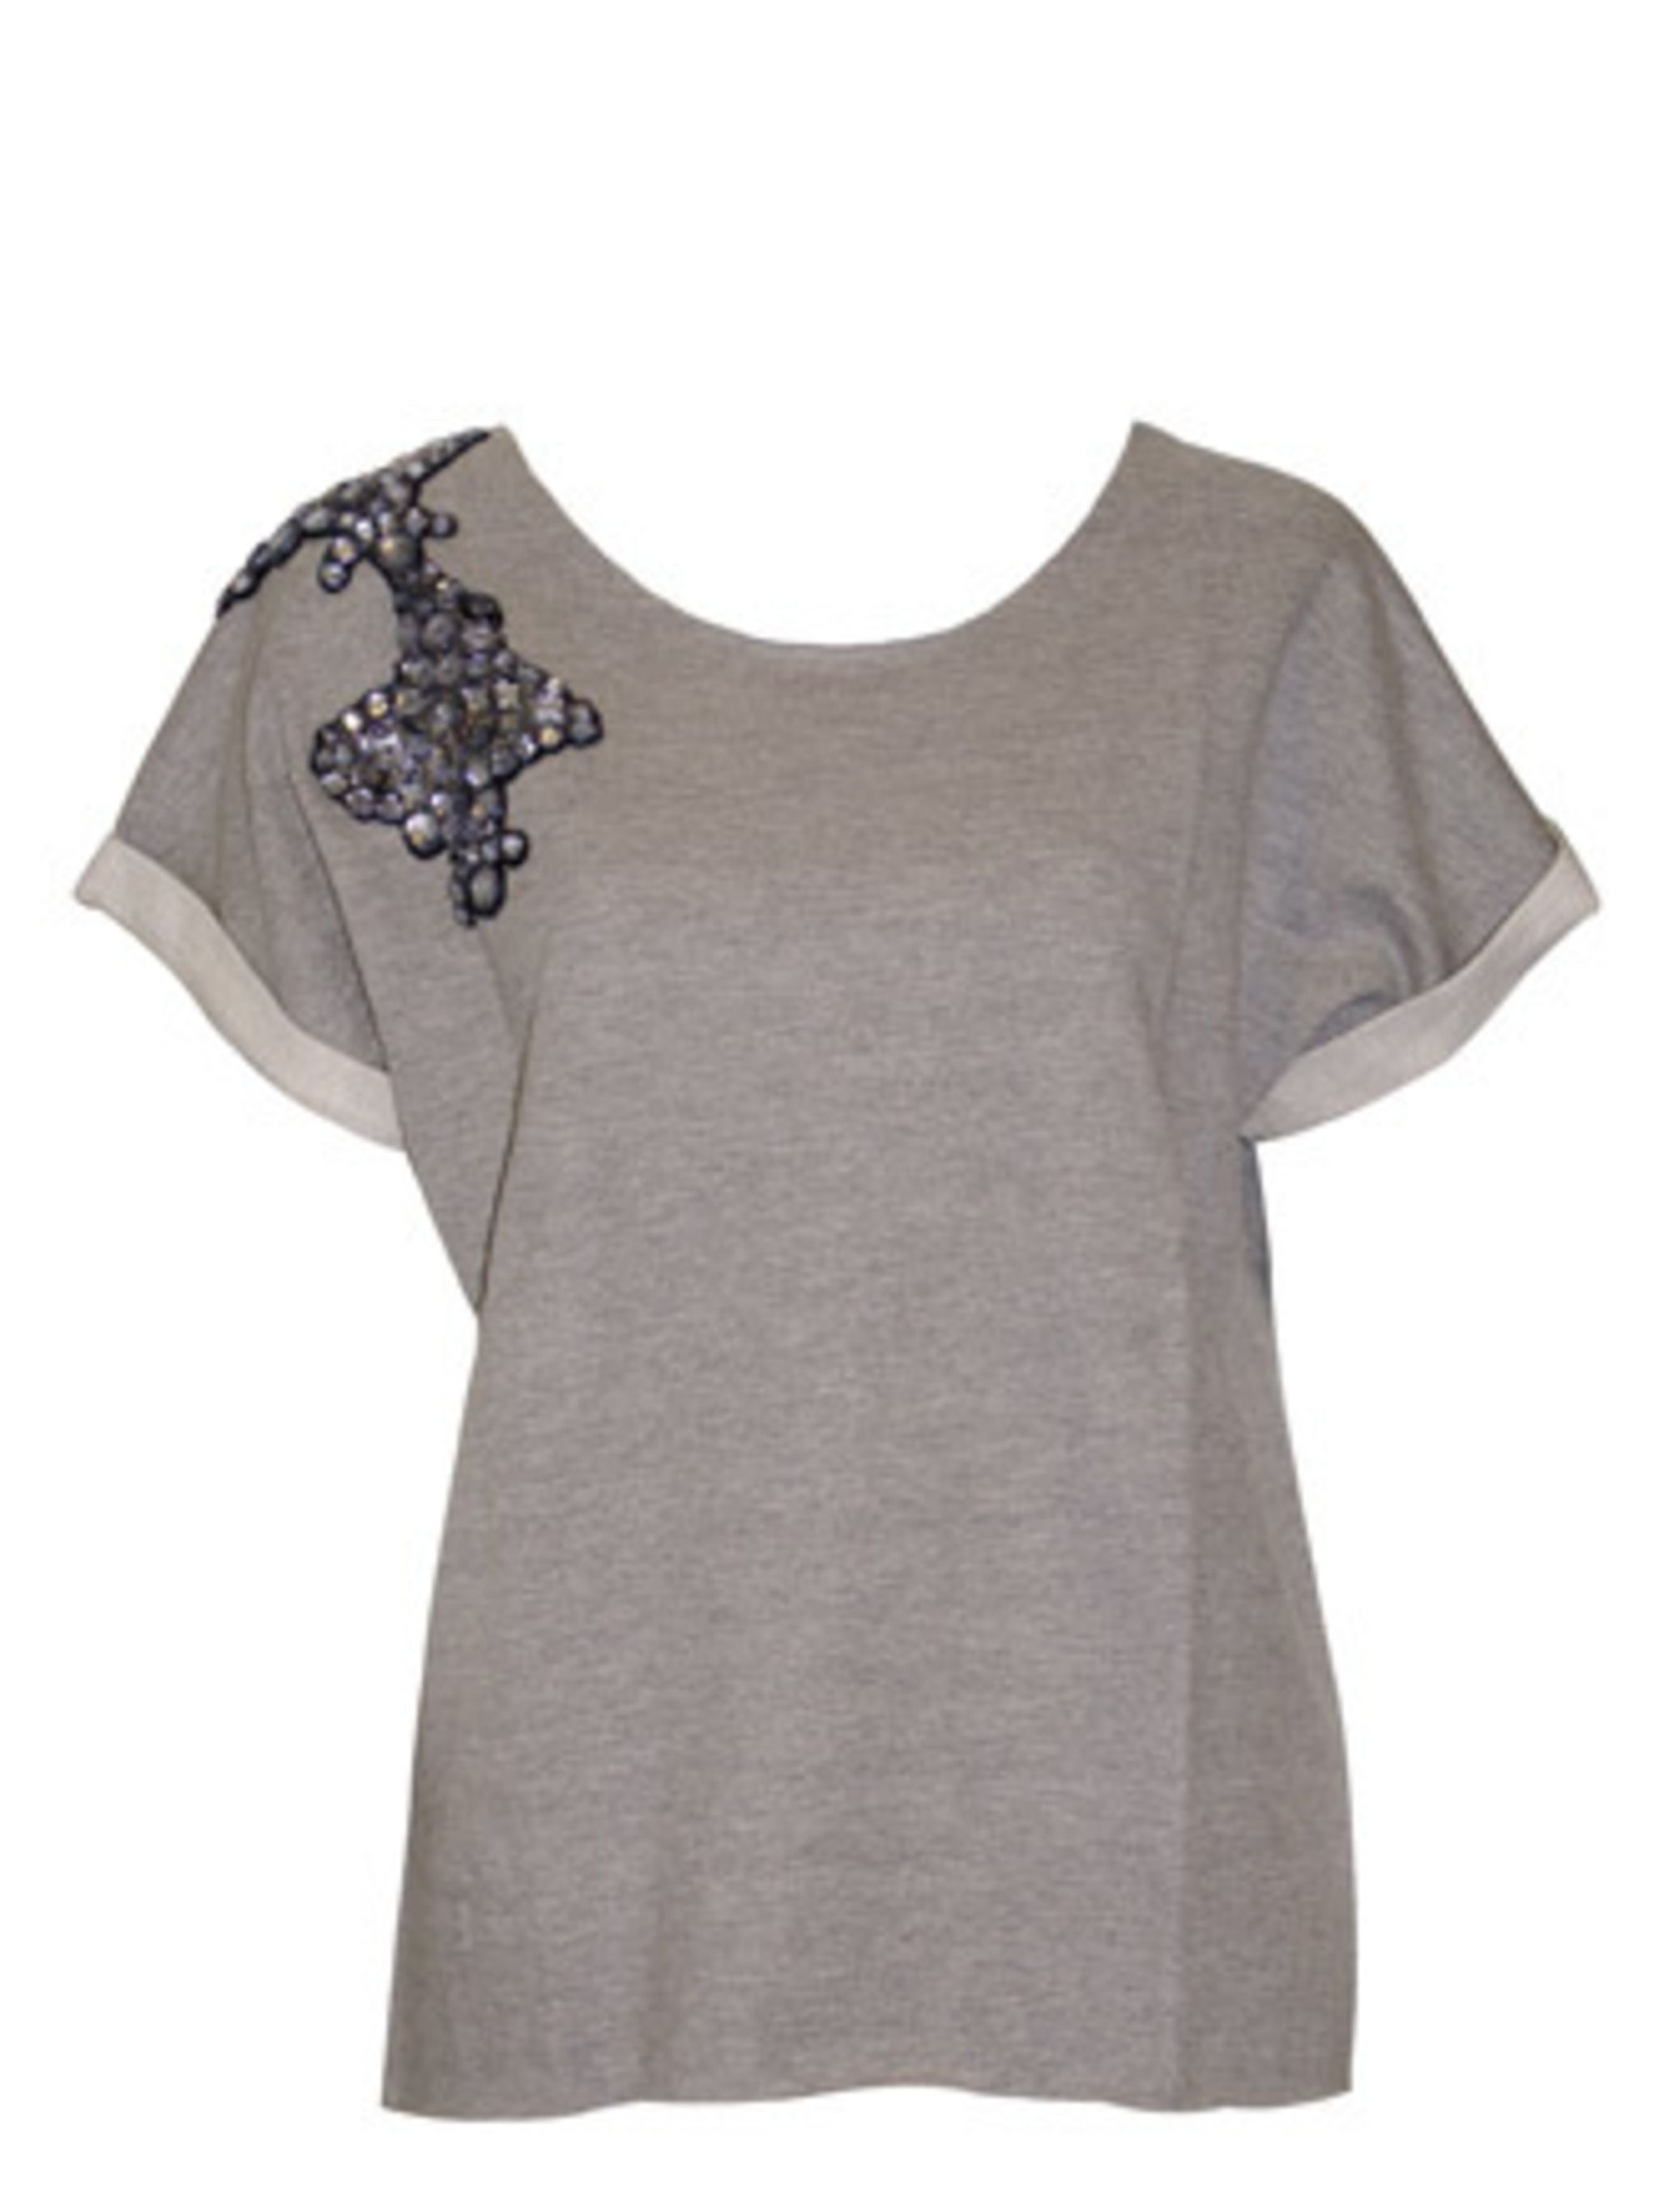 """<p>Whether worn with smart trousers or ripped denim shorts, thanks to the good quality fabric and embellished detail, this will be your go-to Tee for the summer months and beyond. </p><p>T-Shirt, £170 by <a href=""""https://www.o2oxygen.com/products/394/56/g"""